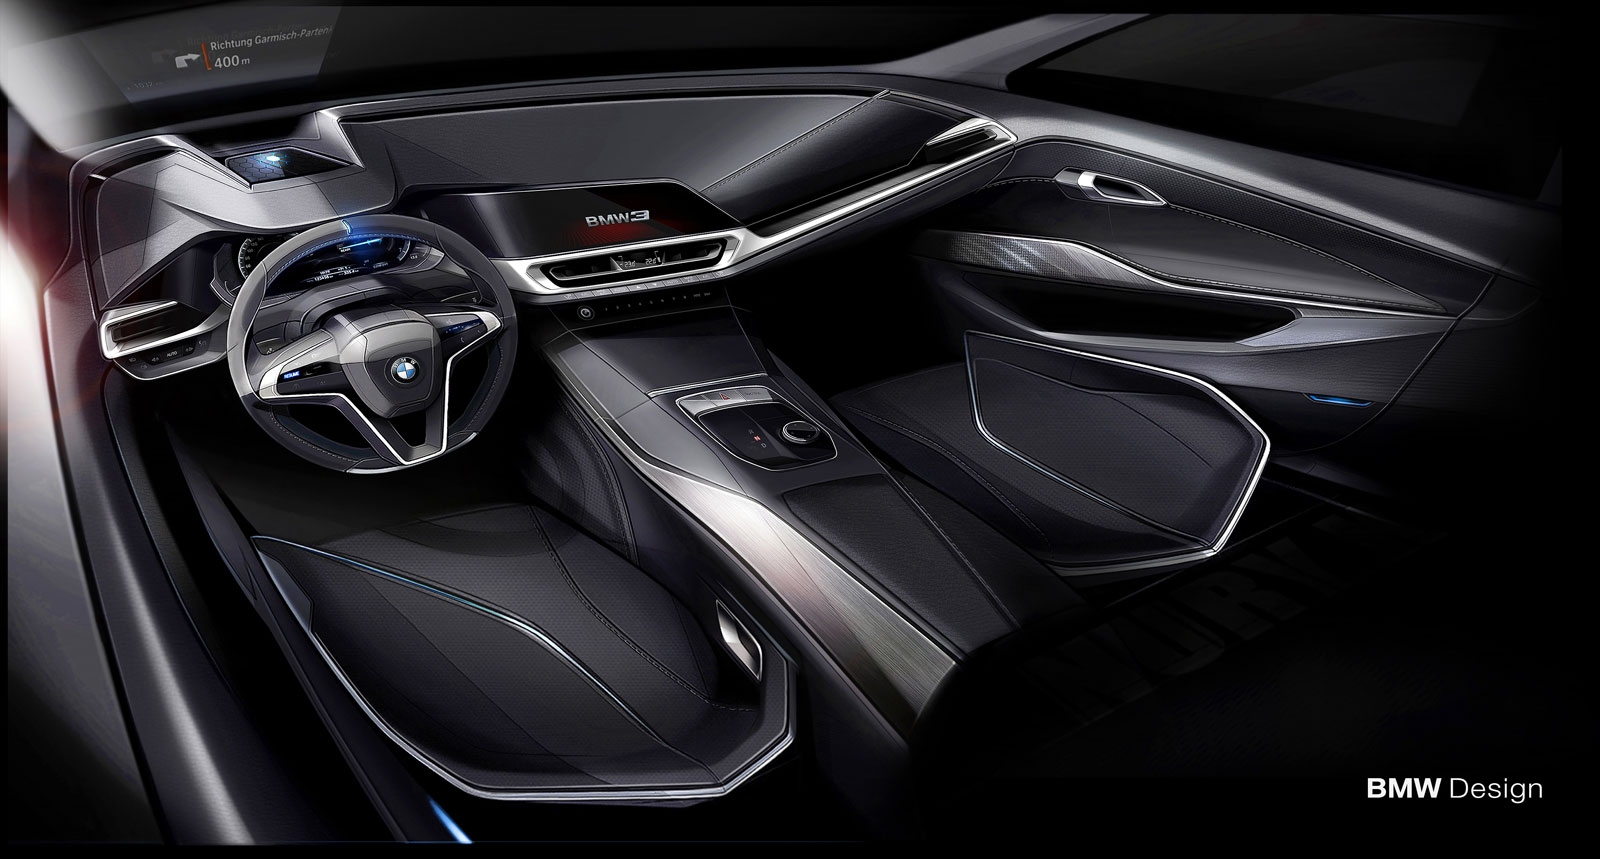 New BMW 3 Series Sedan Interior Design Sketch Render